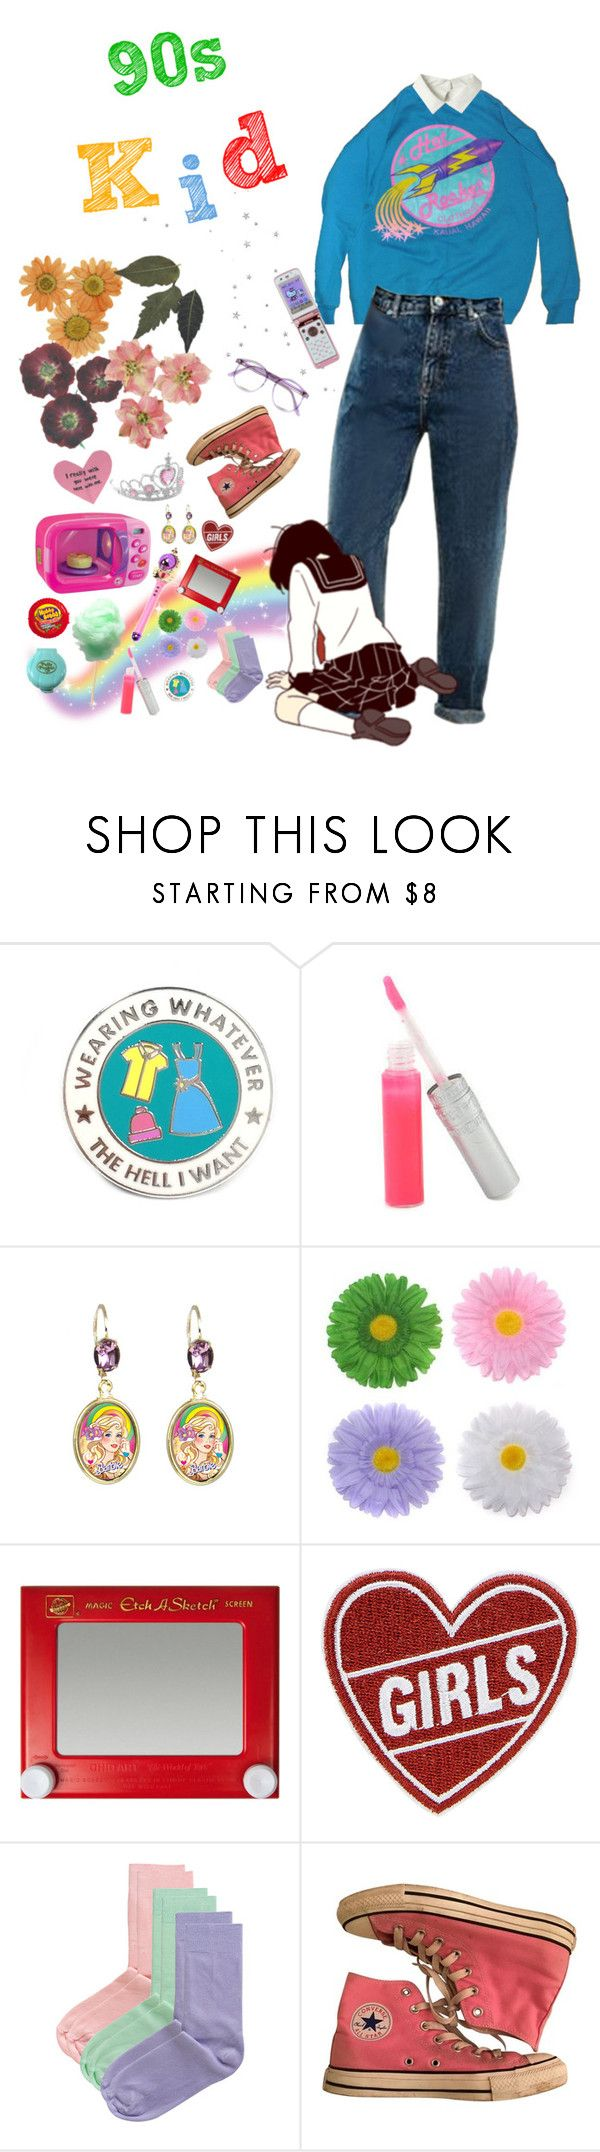 """90s Kid"" by owlenstar on Polyvore featuring T. LeClerc, Tarina Tarantino, Goody, Hello Kitty, American Apparel, Converse and Warehouse"